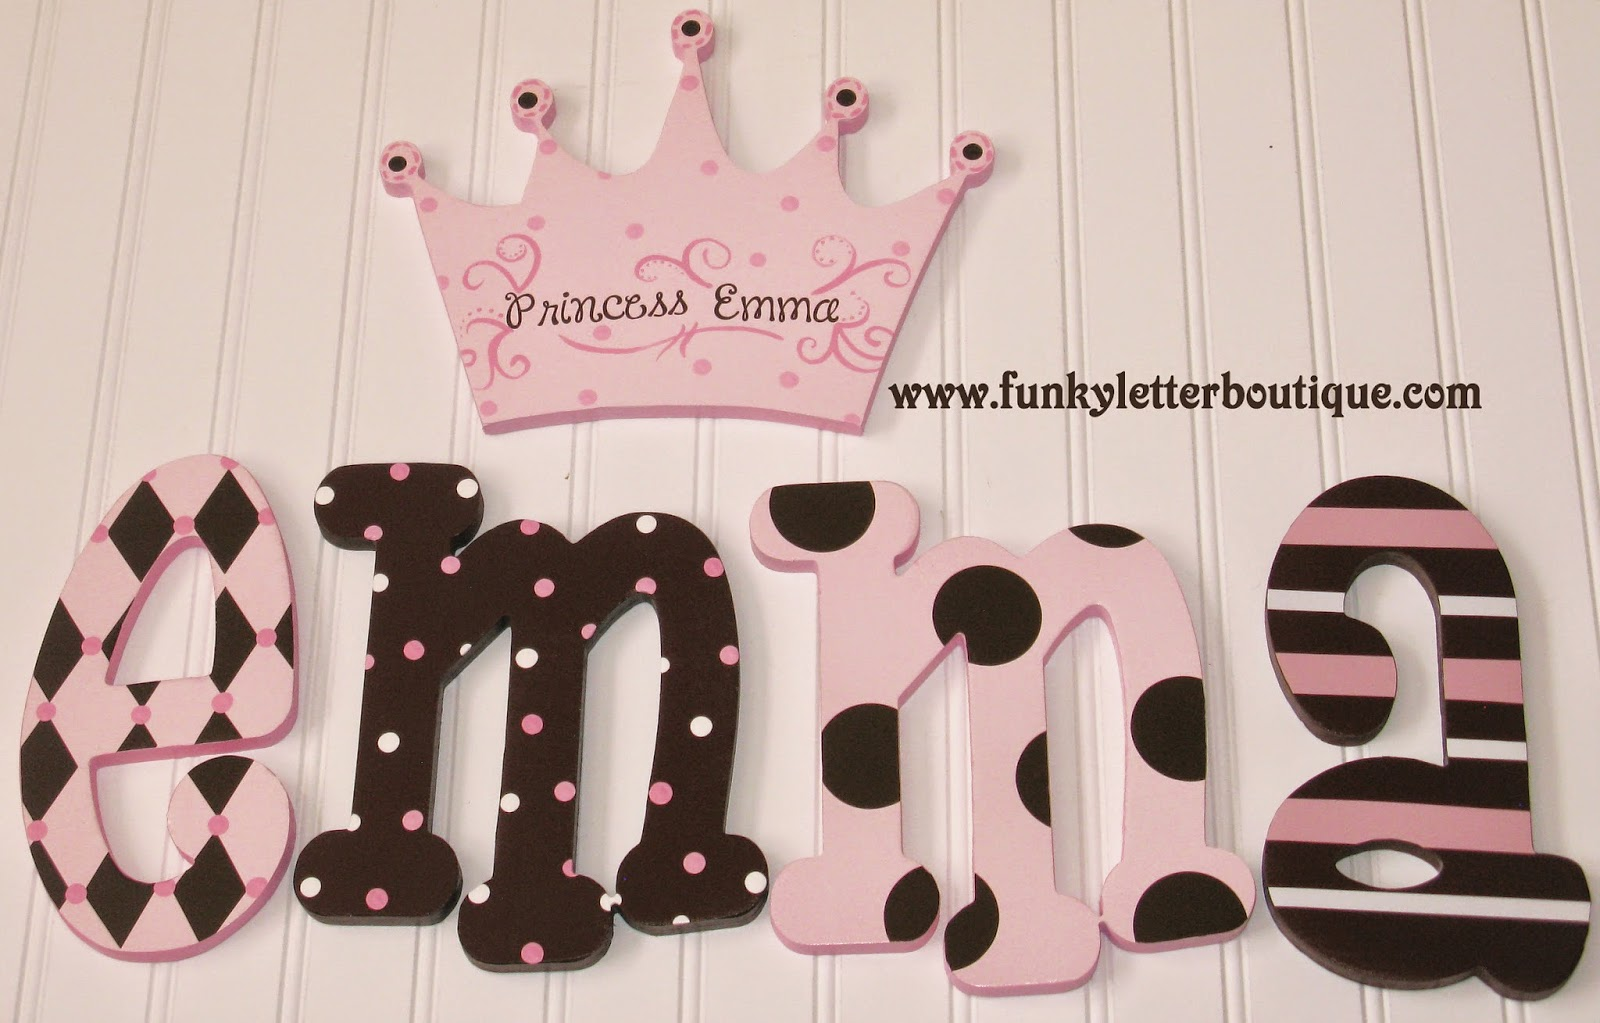 Hand painted letters for nursery thenurseries for Funky nursery ideas